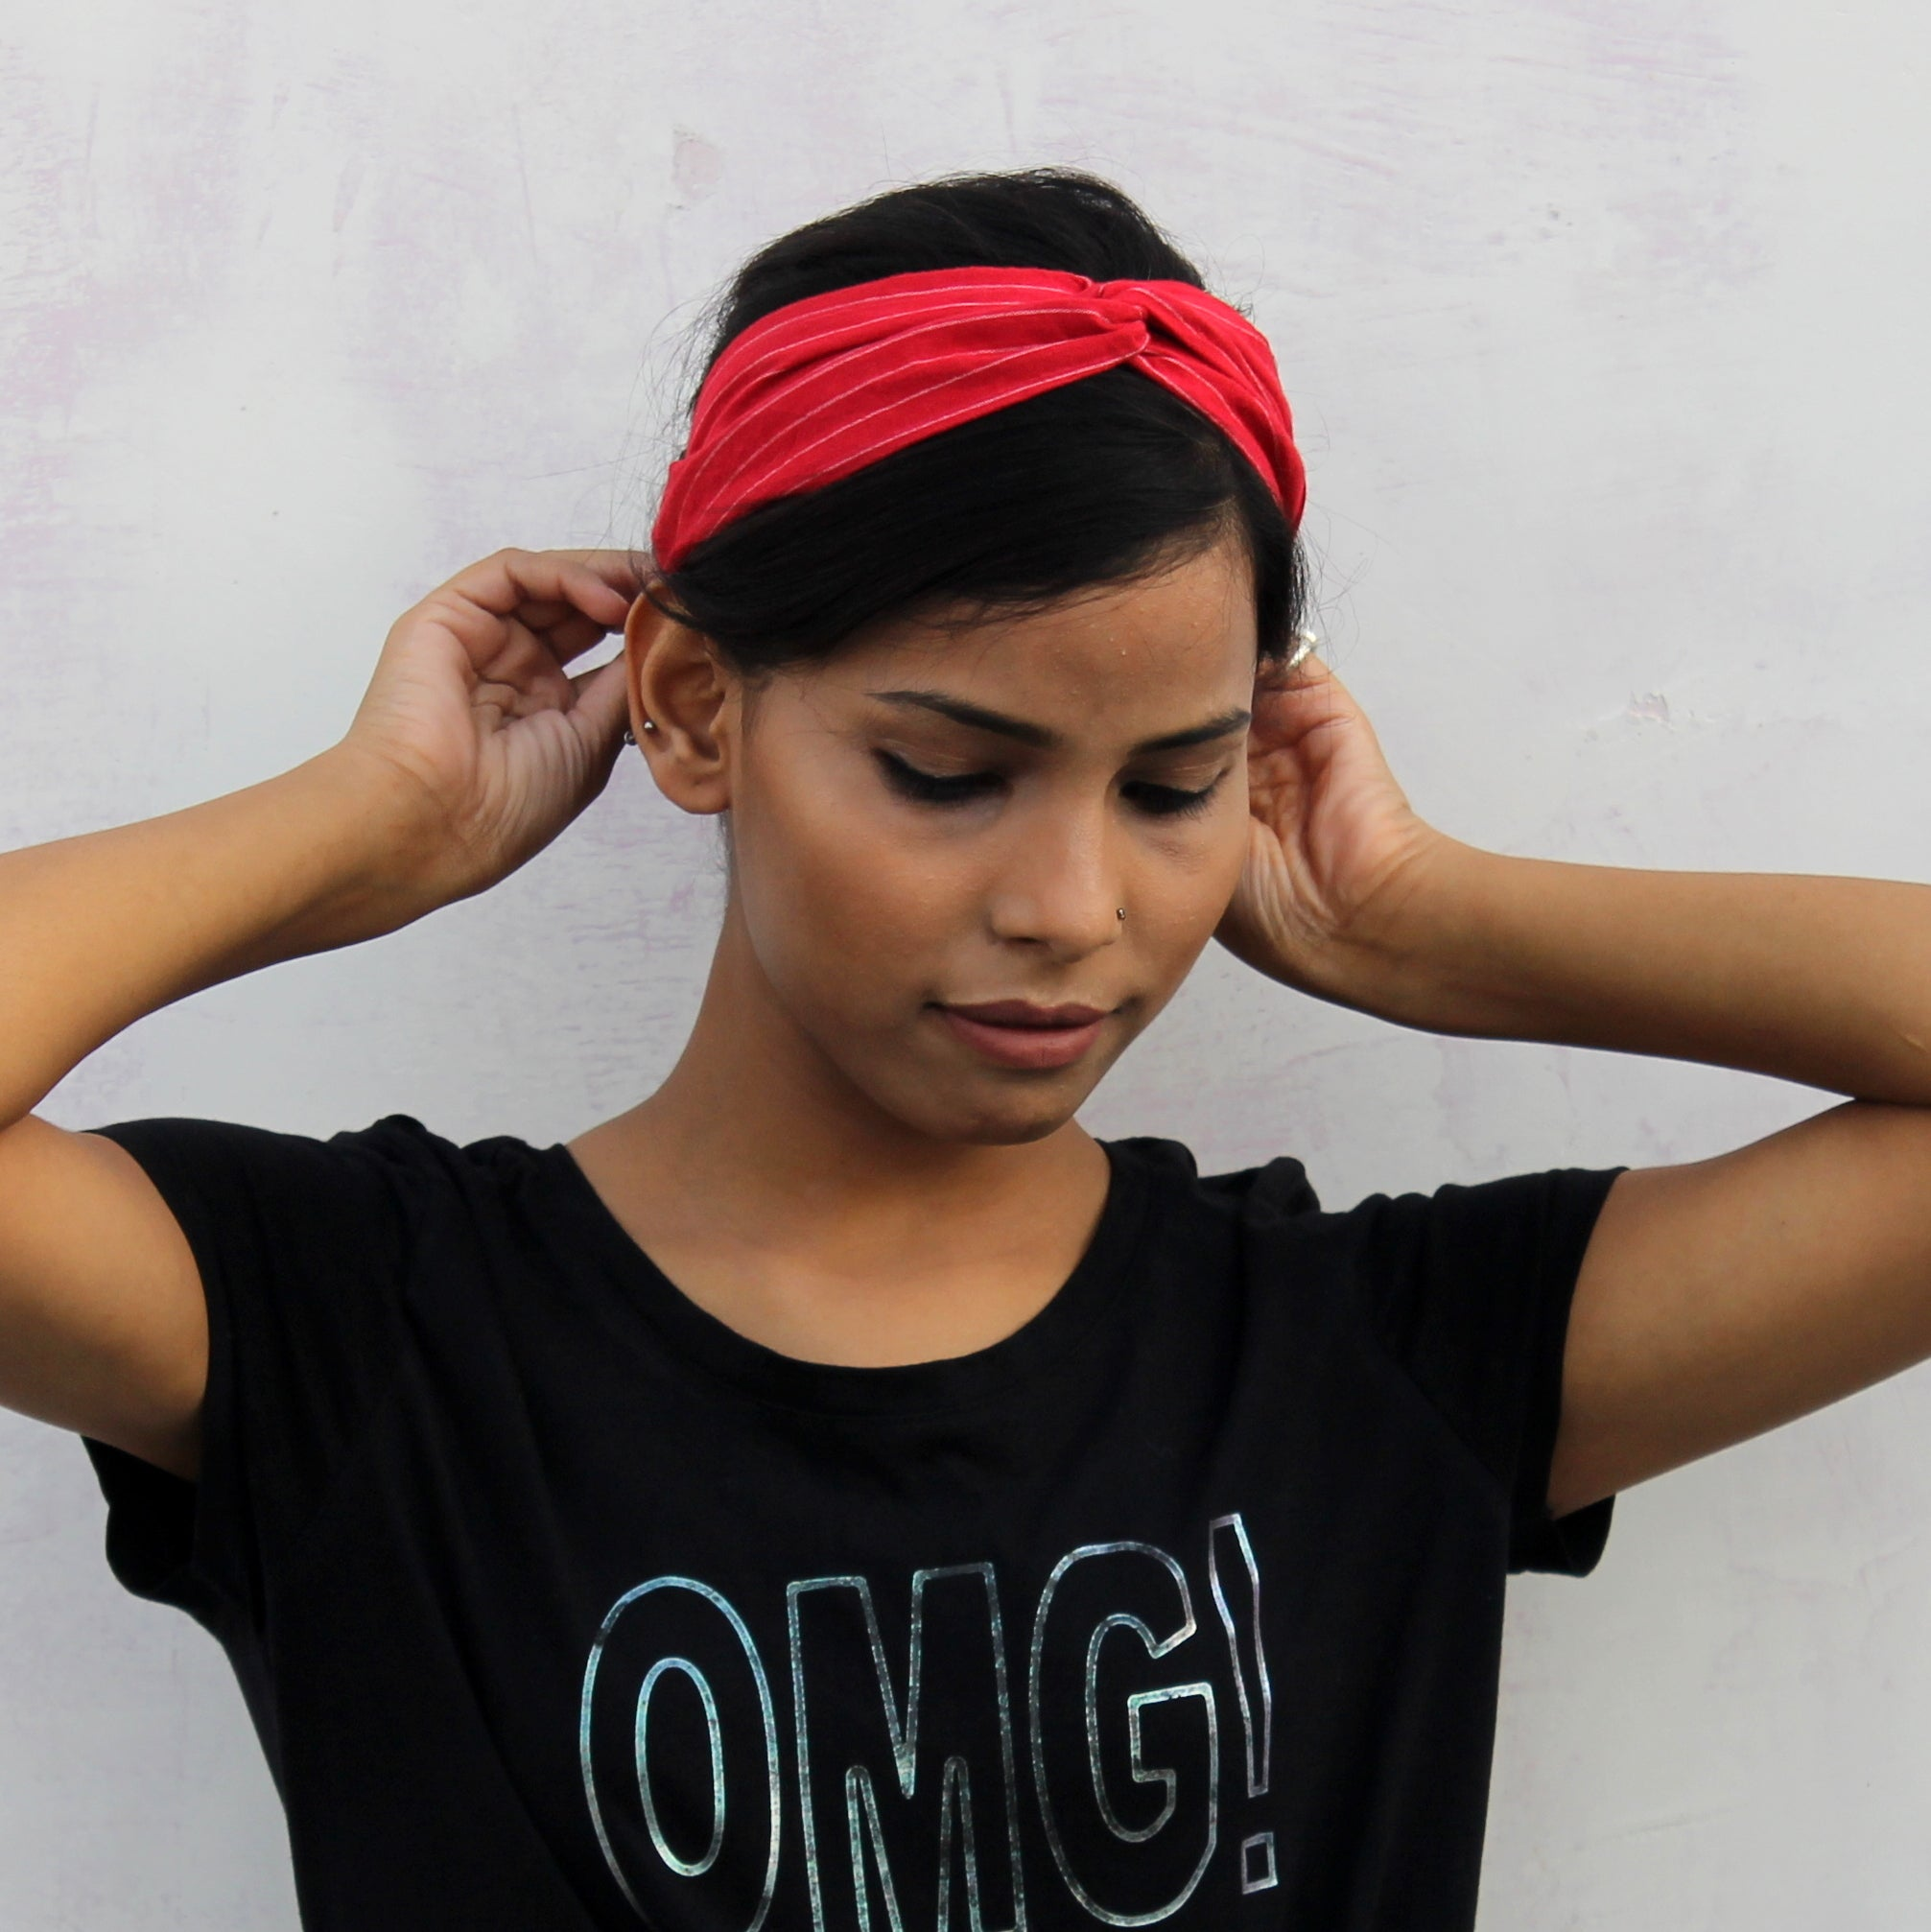 Red crossover headband online at bebaakstudio.com